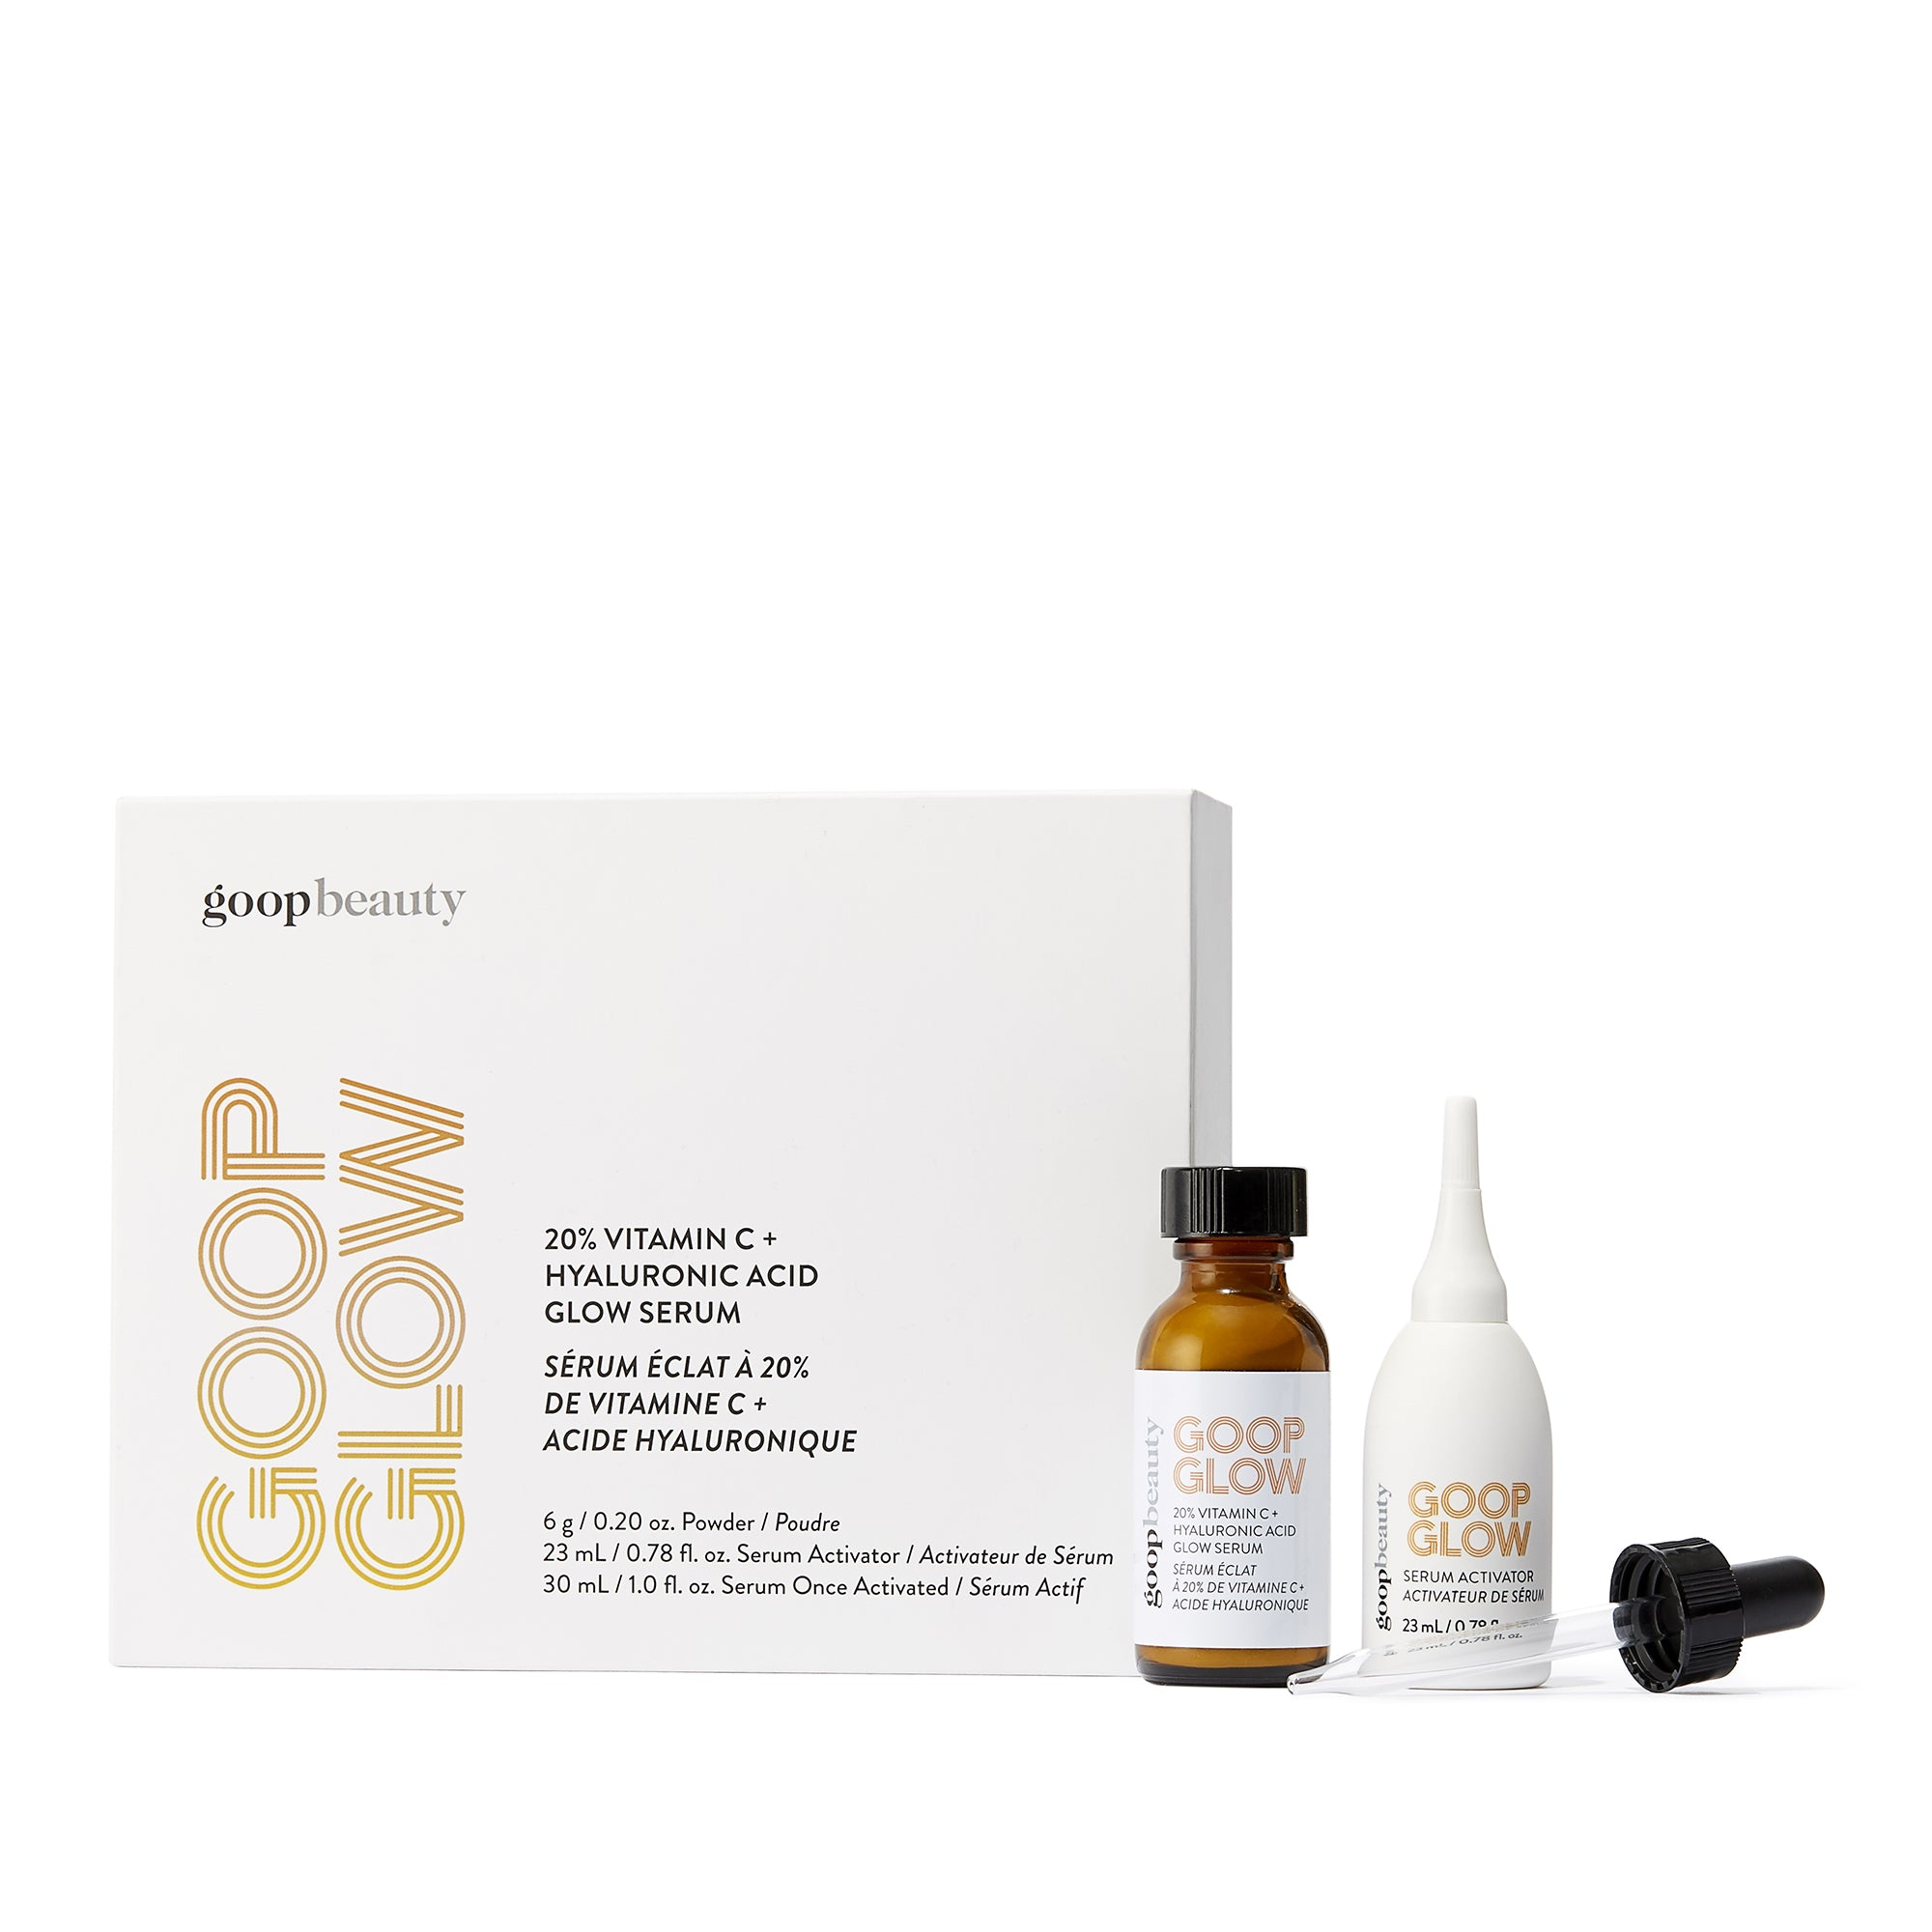 GOOPGLOW 20% Vitamin C + Hyaluronic Acid Glow Serum